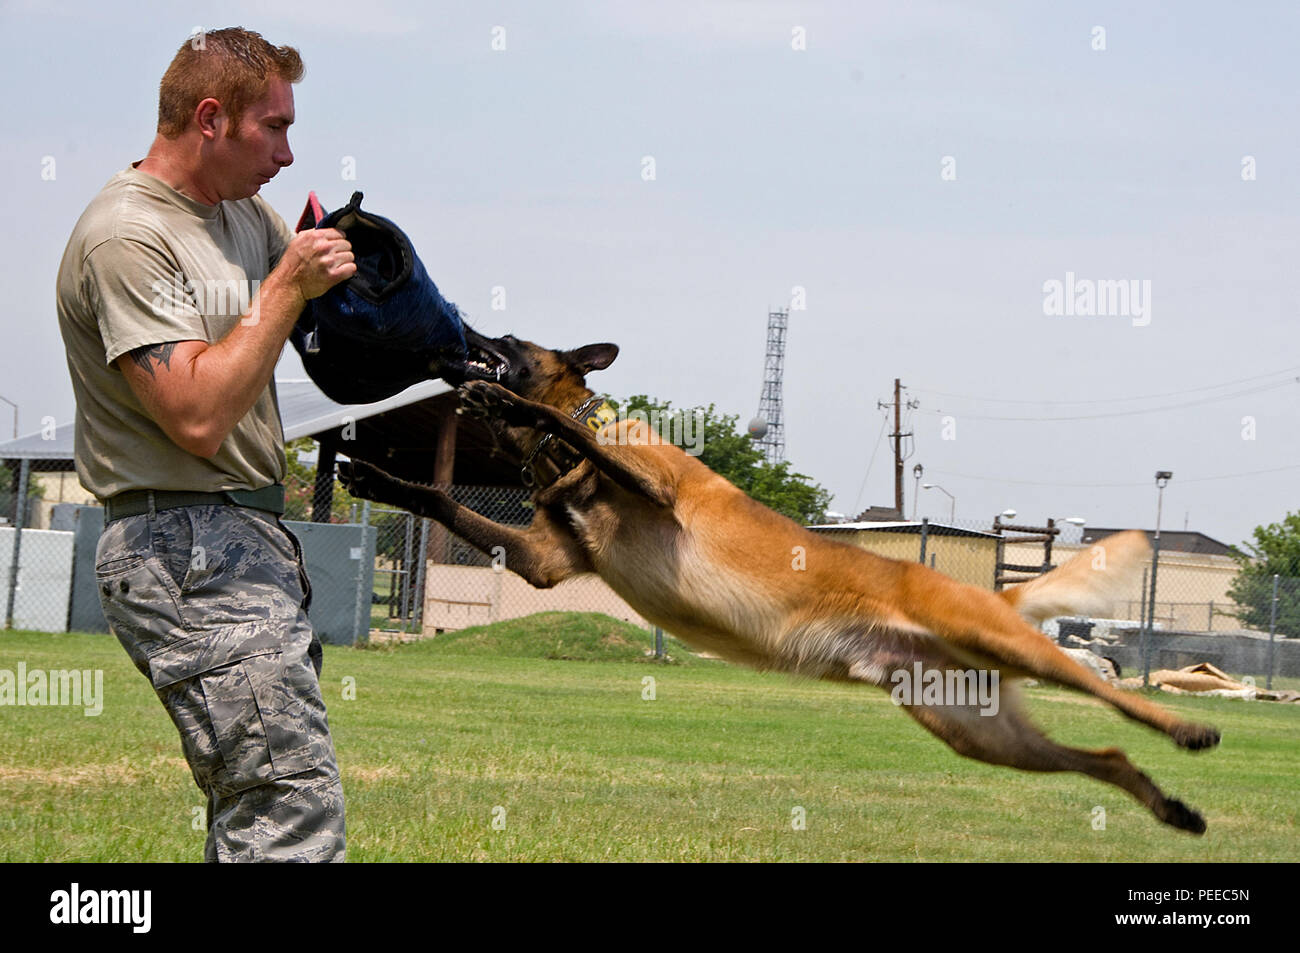 Tech. Sgt. Shawn Rankins and military working dog Eespn, 82nd Security Forces Squadron, demonstrate aggression training Aug. 4, 2015, at Sheppard Air Force Base, Texas. Aggression training keeps the working dogs proficient on protecting their handler and other personnel from dangerous suspects while conducting routine police work. (U.S. Air Force photo by Danny Webb/Released) - Stock Image